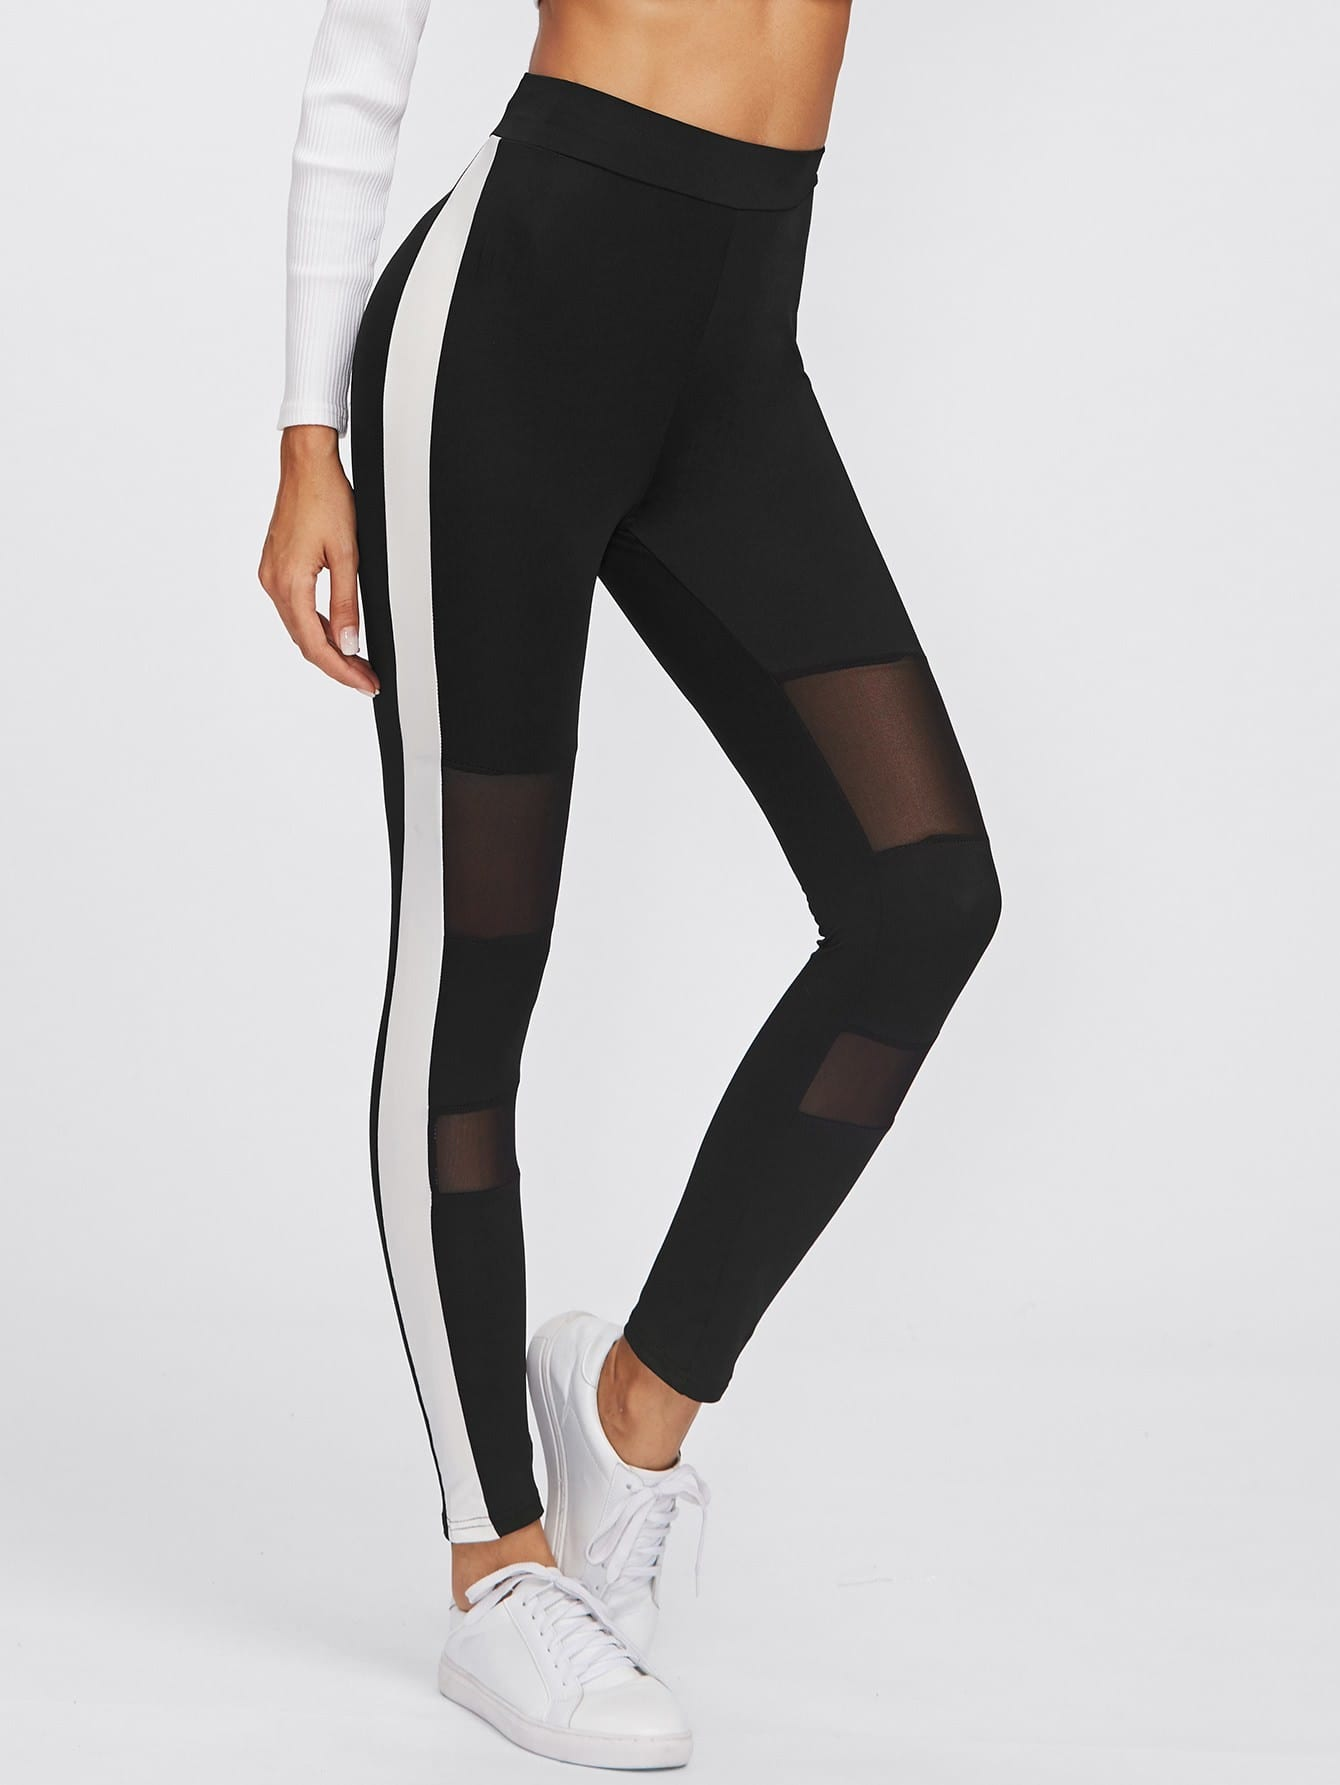 Side Panel Mesh Insert Empire Leggings side panel mesh insert camo leggings